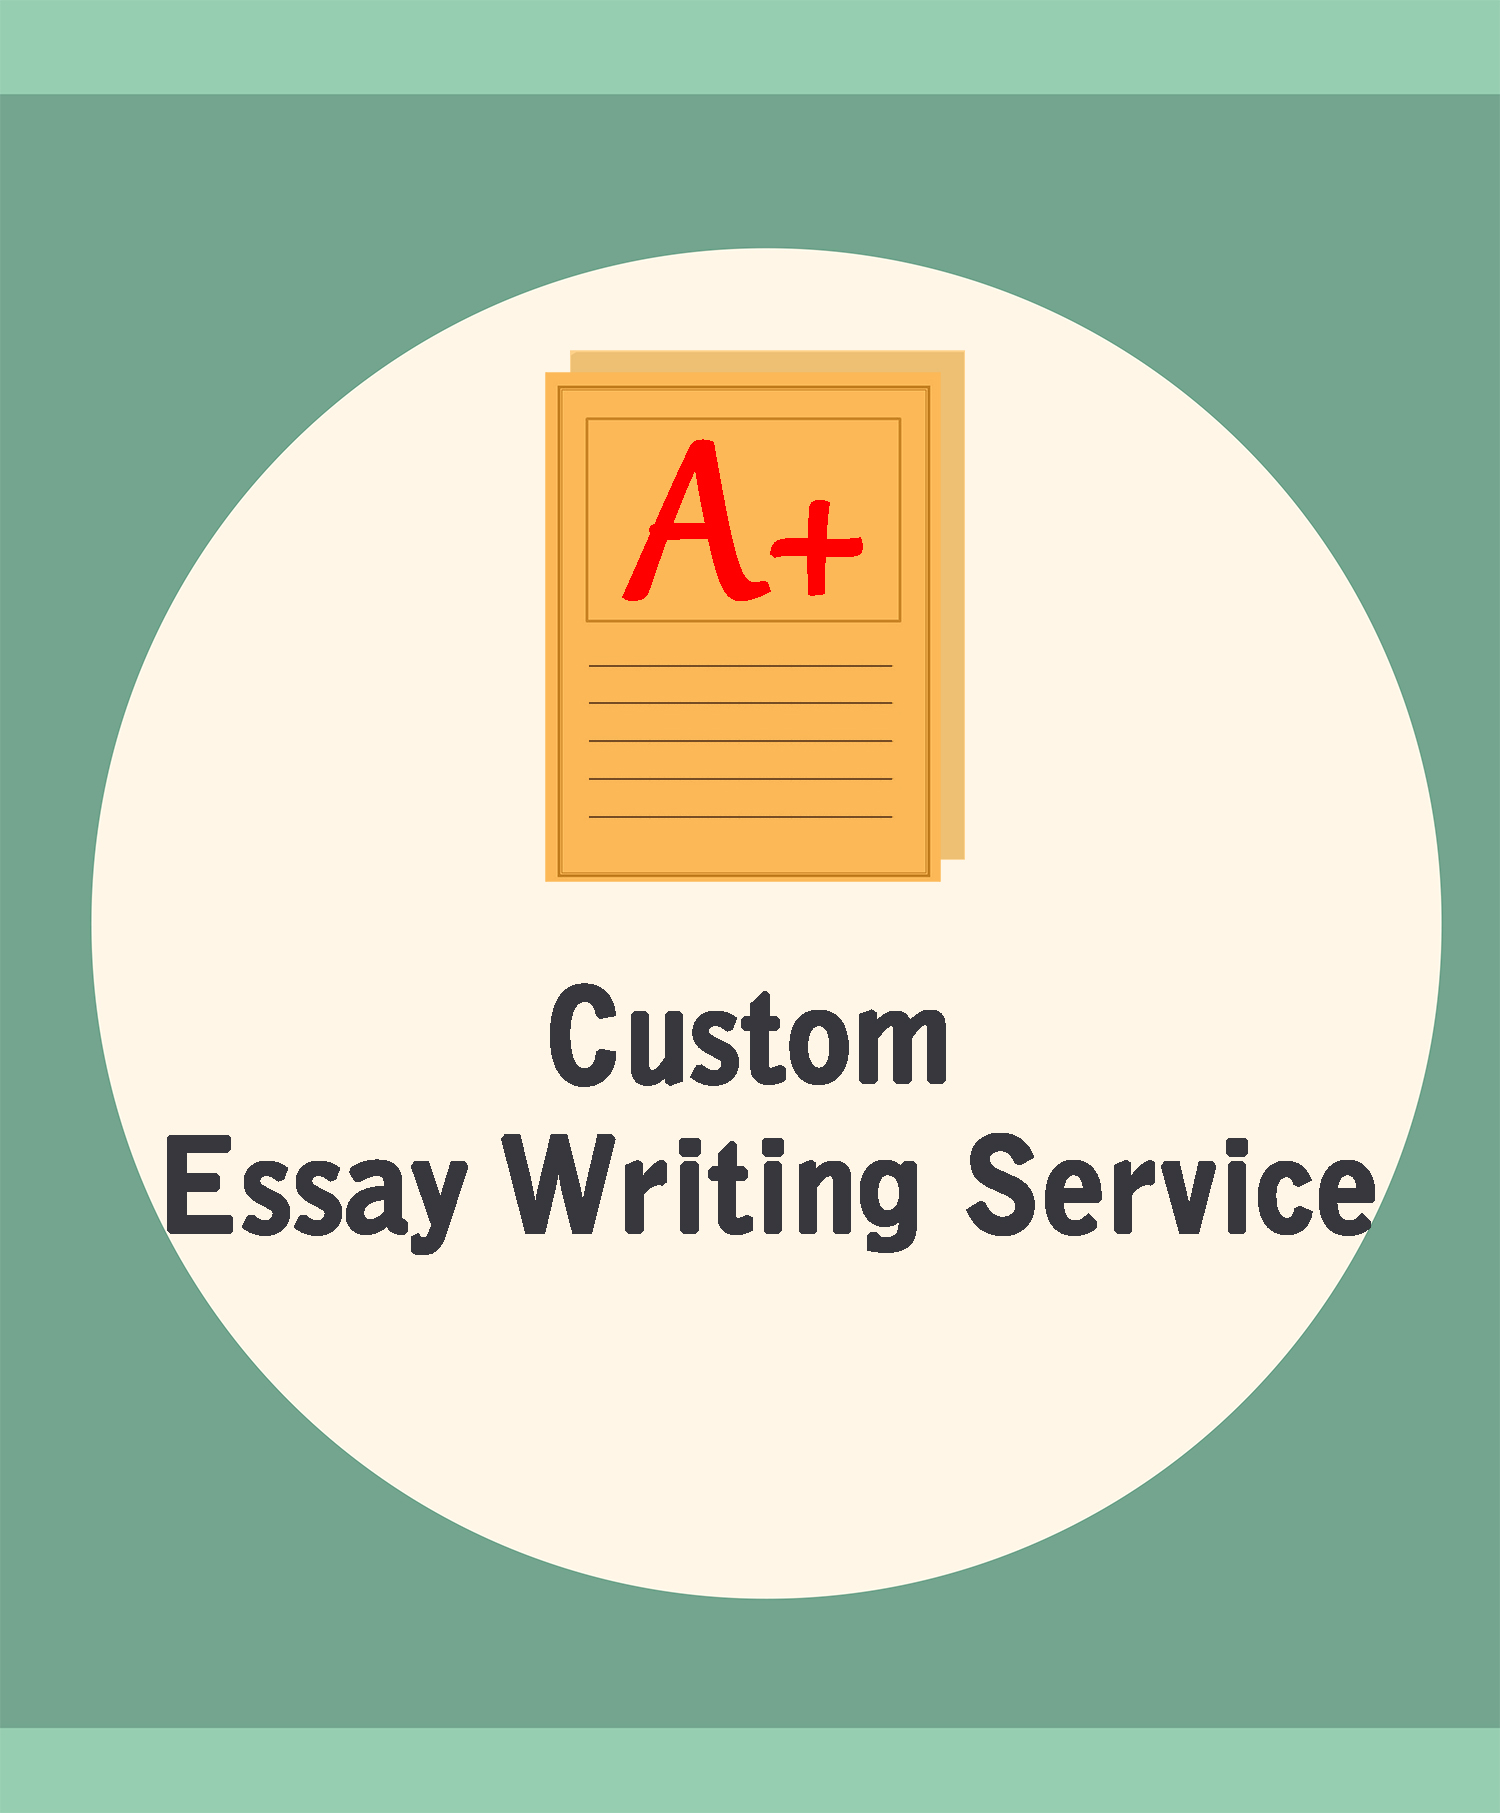 Essay Mother Tongue Custom Paper Writing Custom Paper Writing Tk Writing College Essays For Money also Samples Of Essays For Scholarships Customized Essay Custom Essay Online Custom Essays Editor Sites For  Essay Importance Of Water